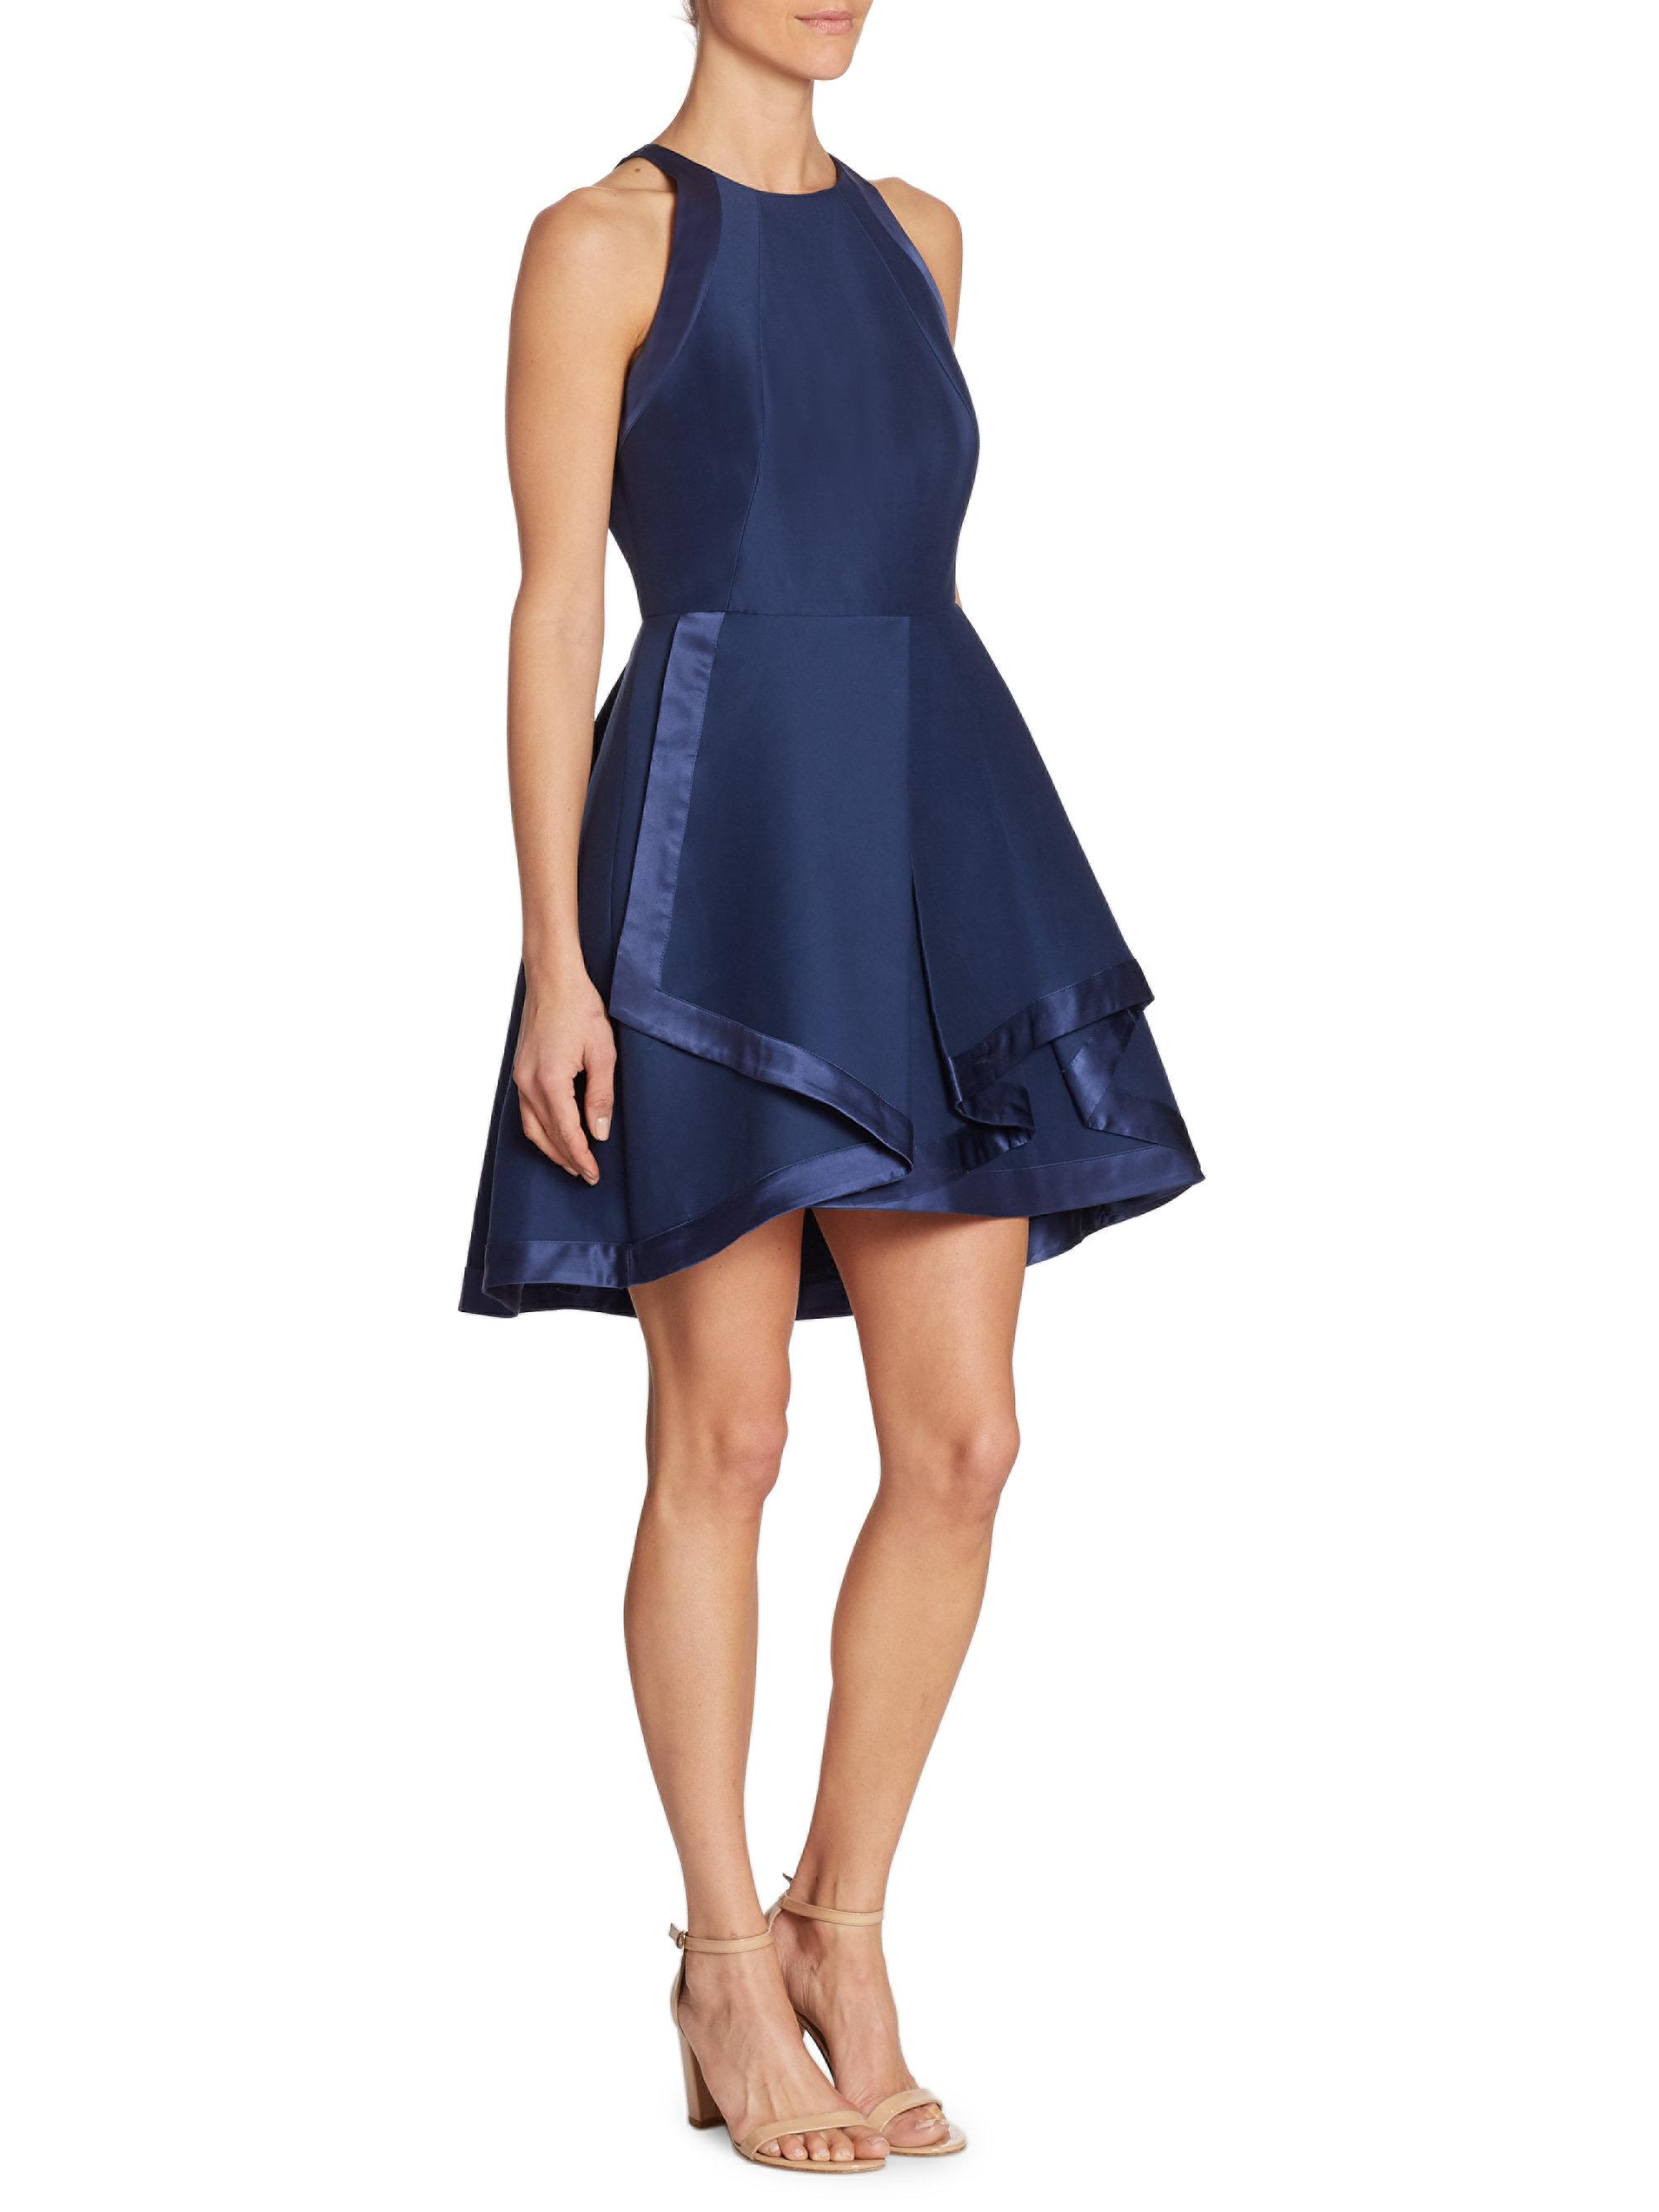 Find Blue high neck dresses at ShopStyle. Shop the latest collection of Blue high neck dresses from the most popular stores - all in one place.